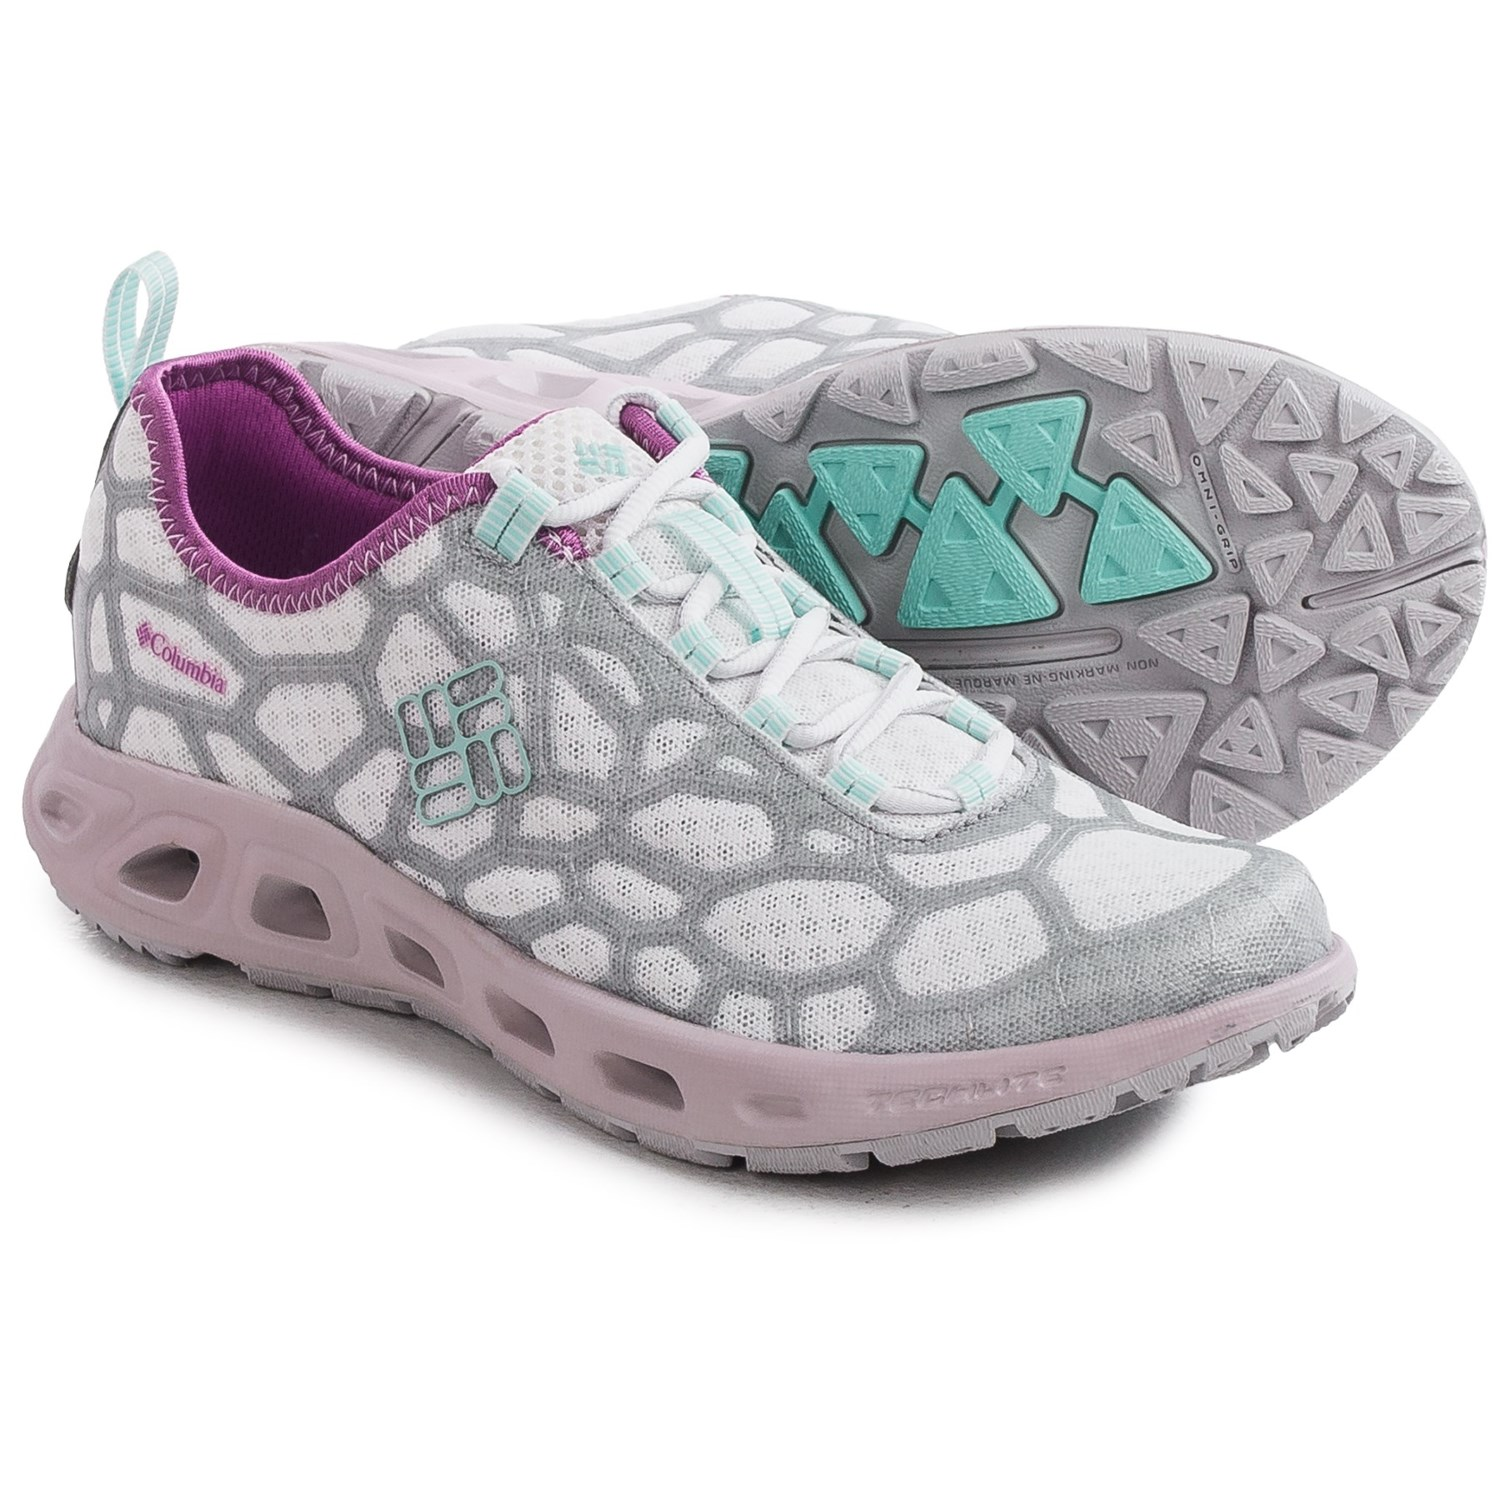 Columbia Sportswear Megavent Shift Shoes Color Changing For Women